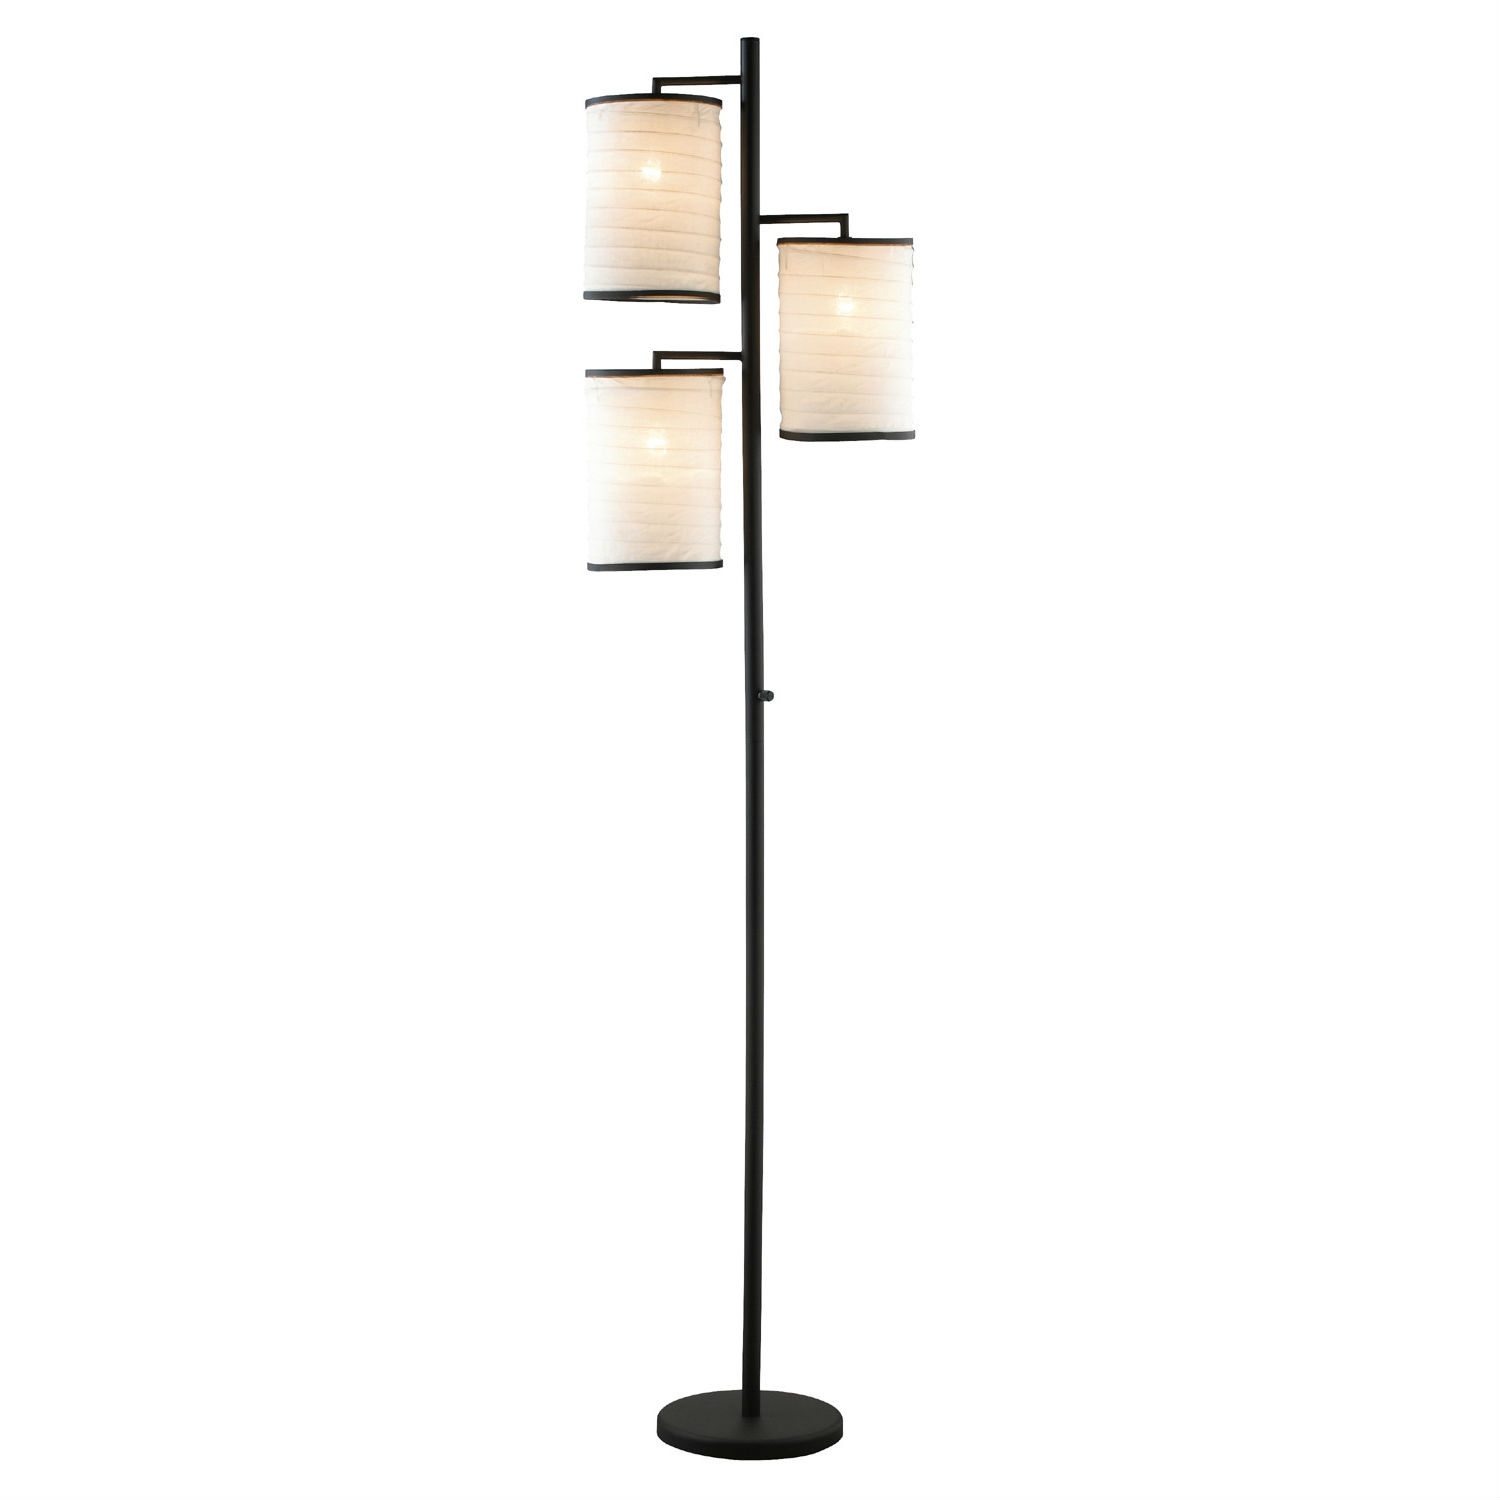 Creativeworks home decor floor lamps for 3 way thick base floor lamp antique bronze